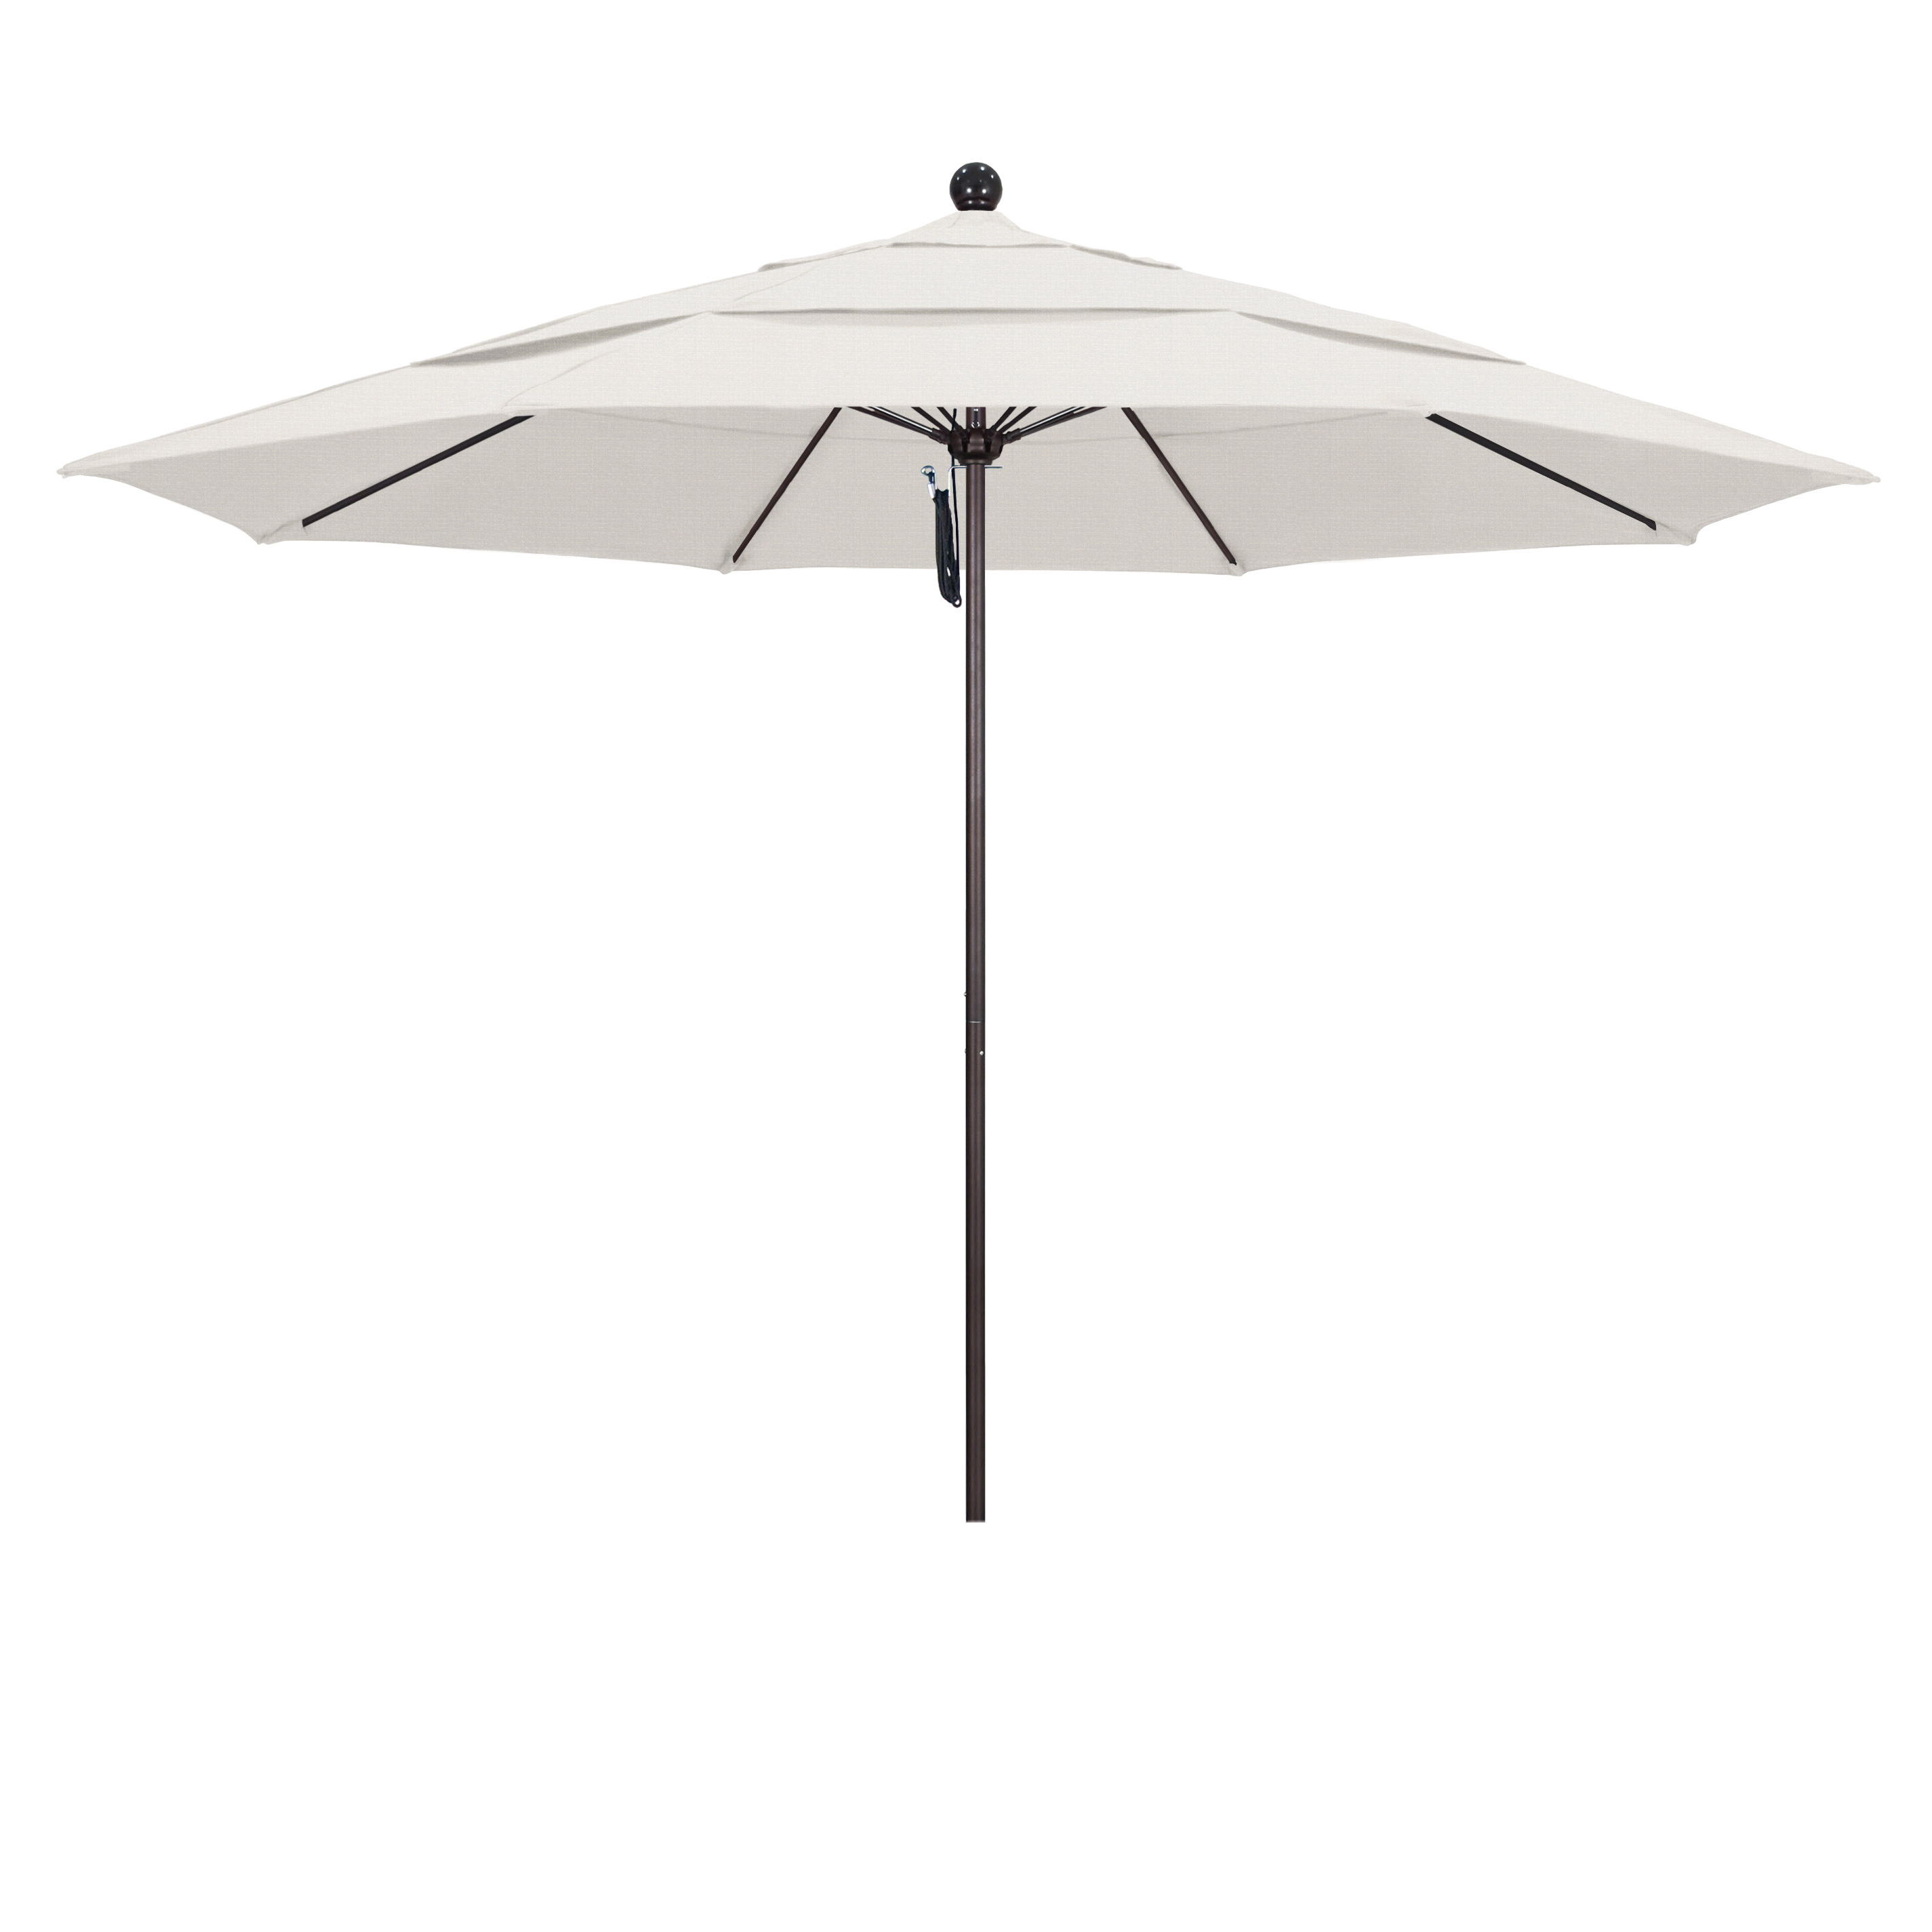 Widely Used Davenport 11' Market Umbrella With Mullaney Market Umbrellas (View 20 of 20)